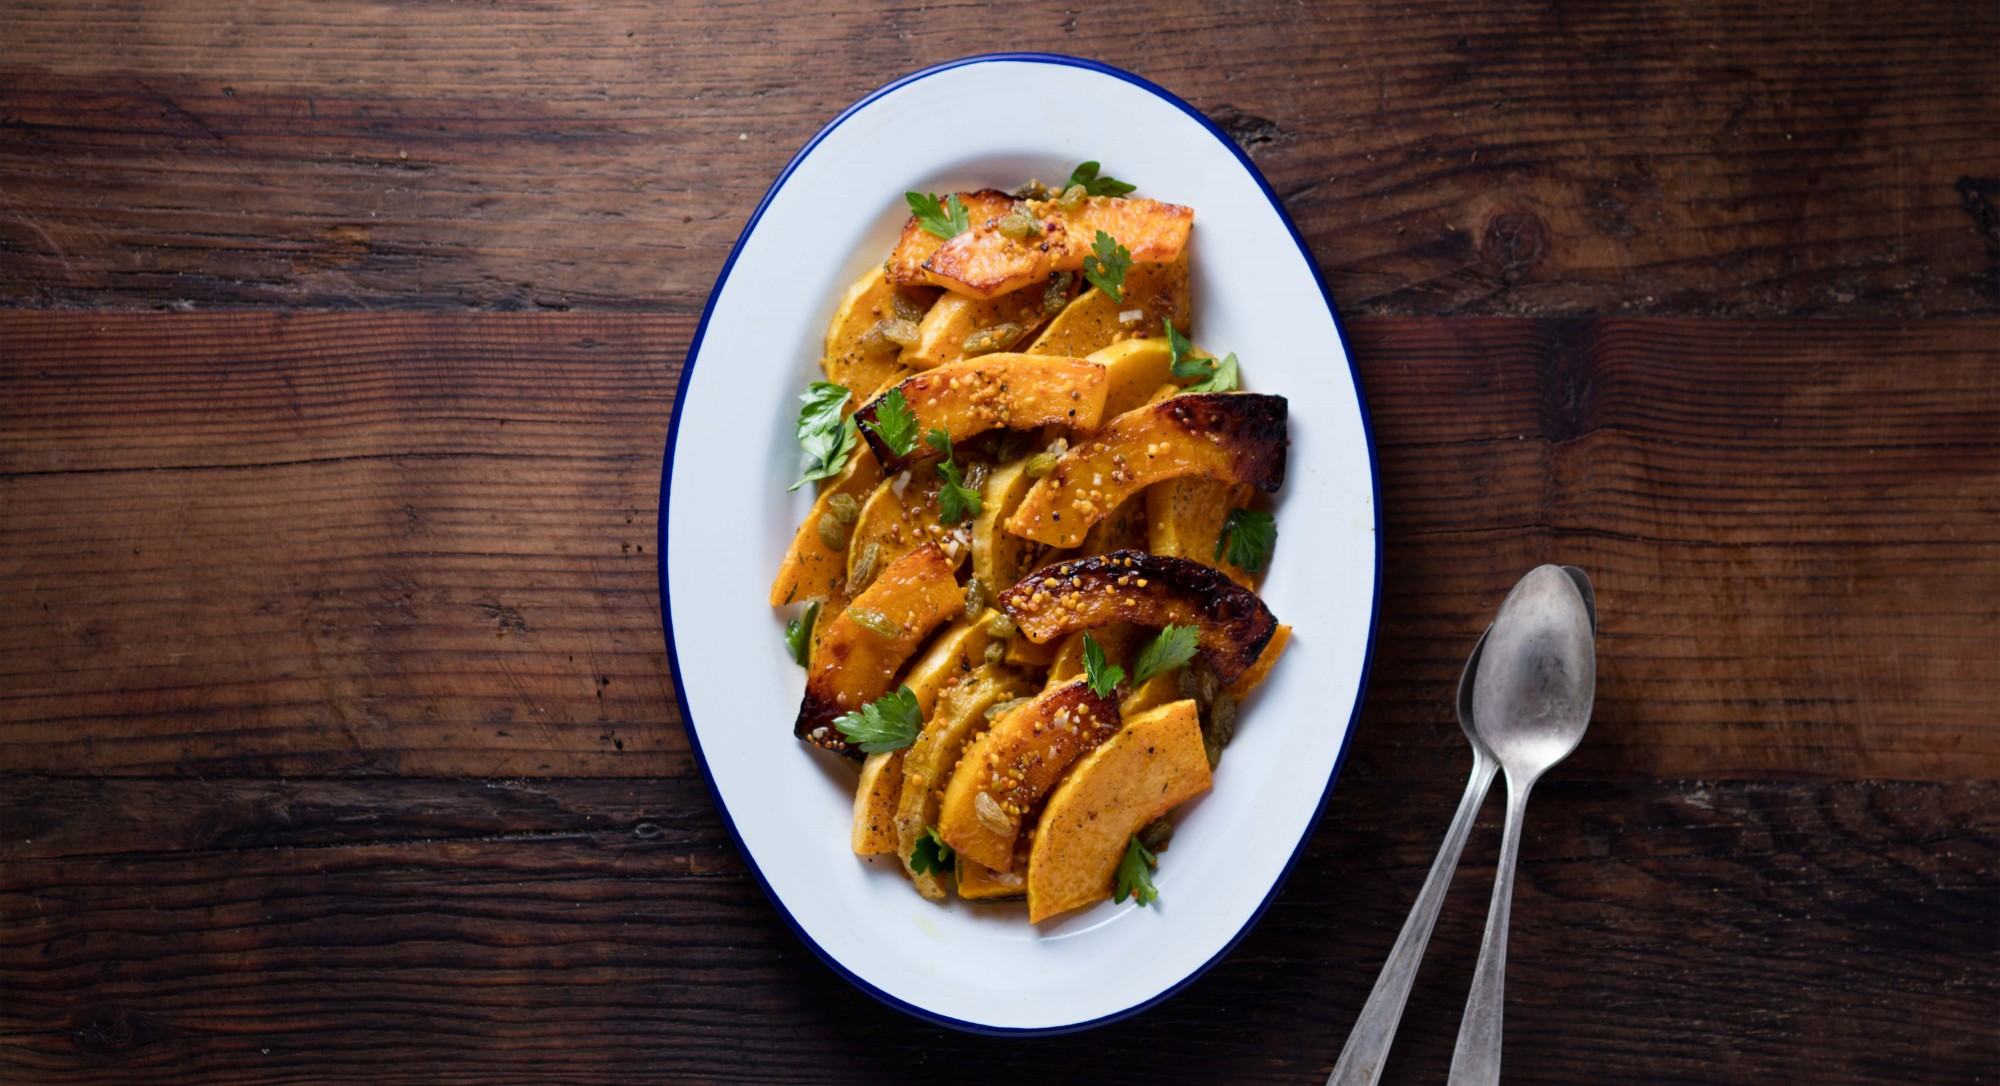 Upgrade Roasted Butternut Squash With This Surprising Superfood